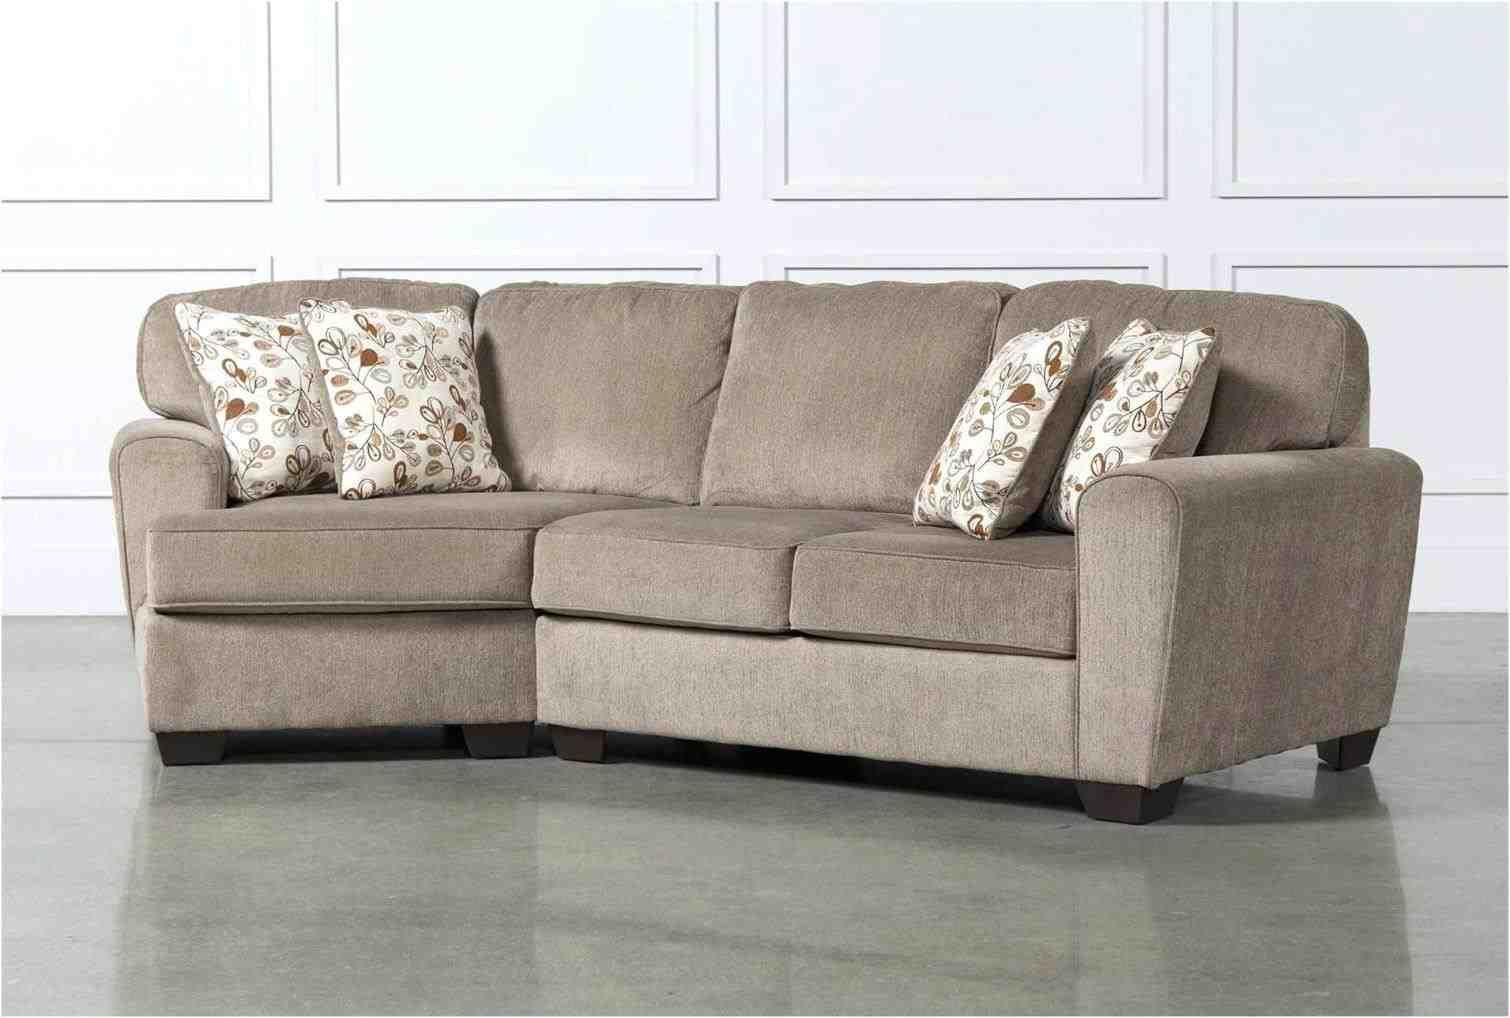 Cheap Leather Sofas Argos Grayher Sofas Reclining Sofa And Loveseat Grey Chairs Argos Ebay Corner Small Apartment Couch Sectional Sofa Small Sectional Sofa